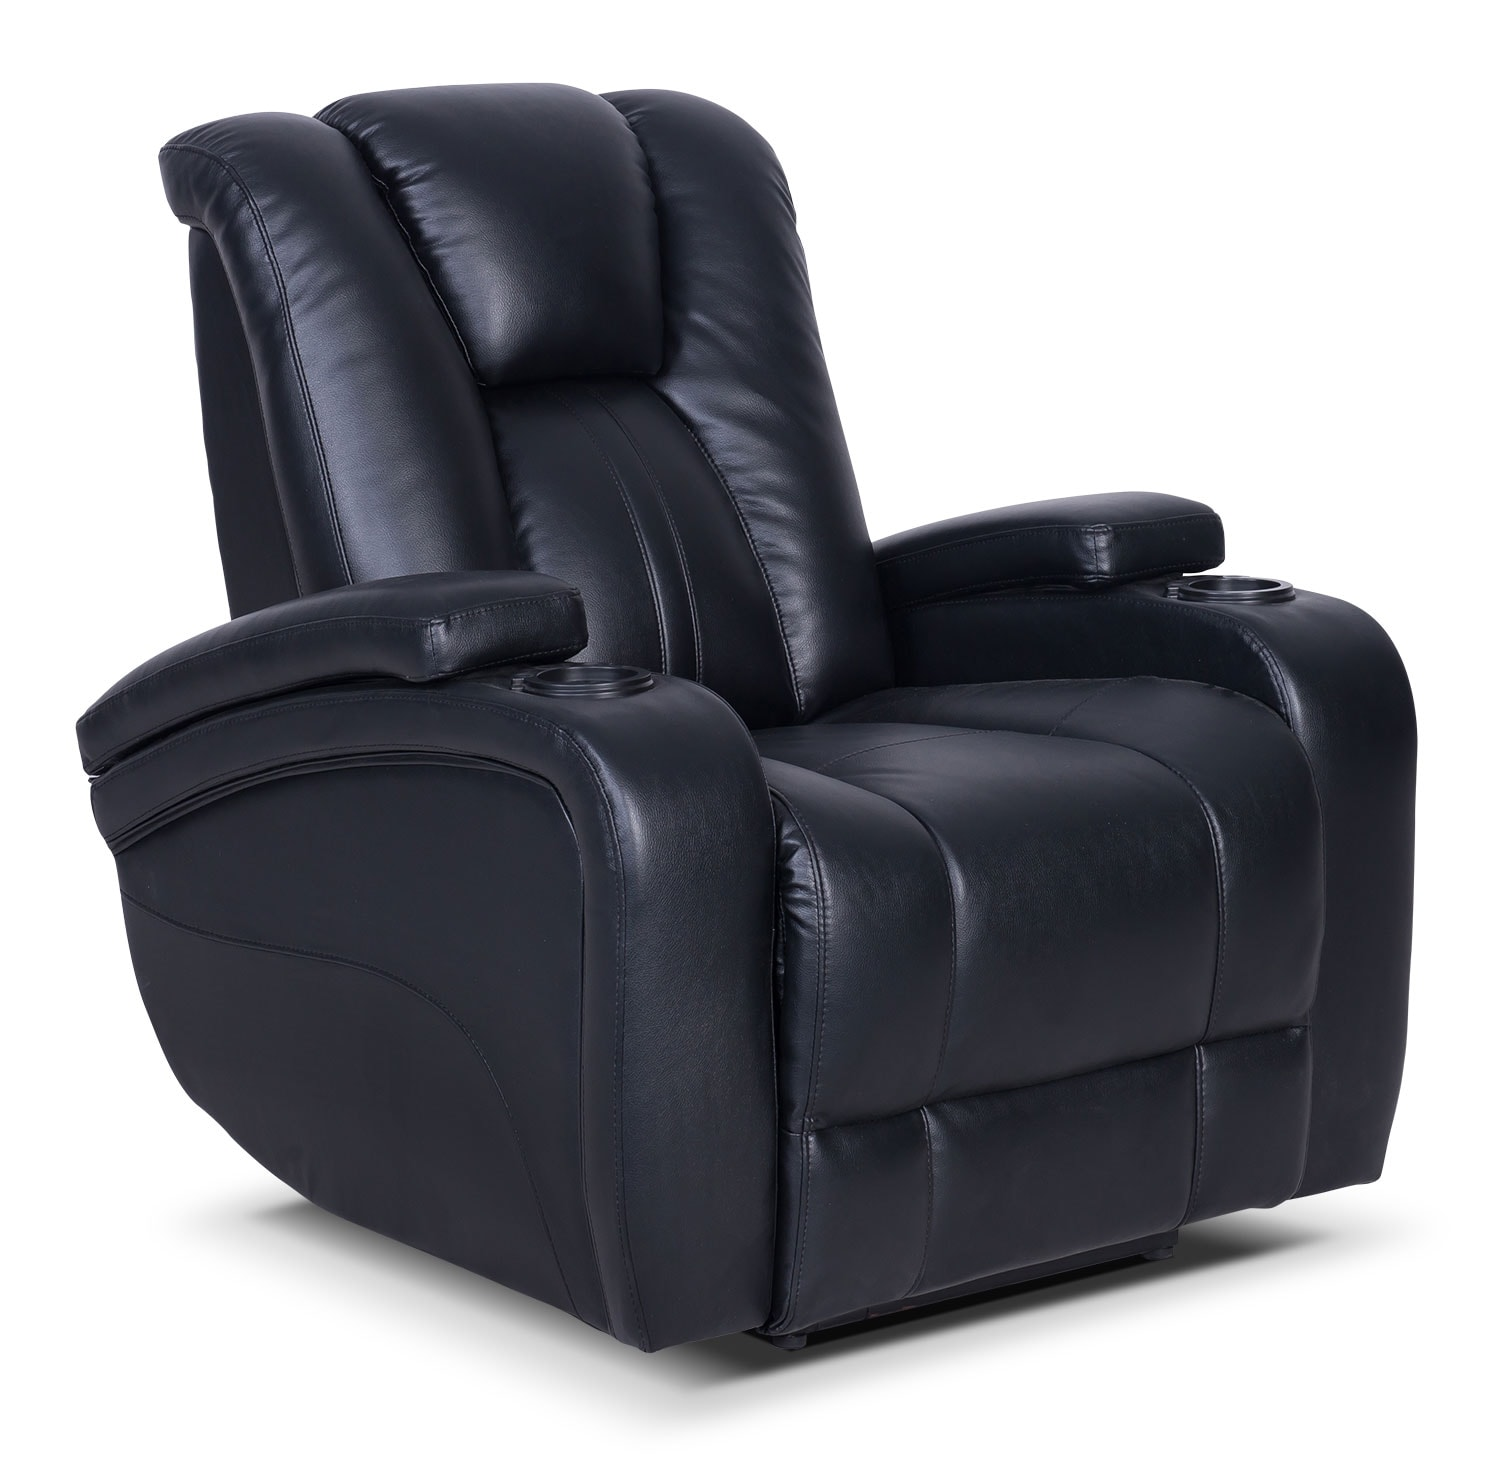 Living Room Furniture - Zander Bonded Leather Power Reclining Chair - Black